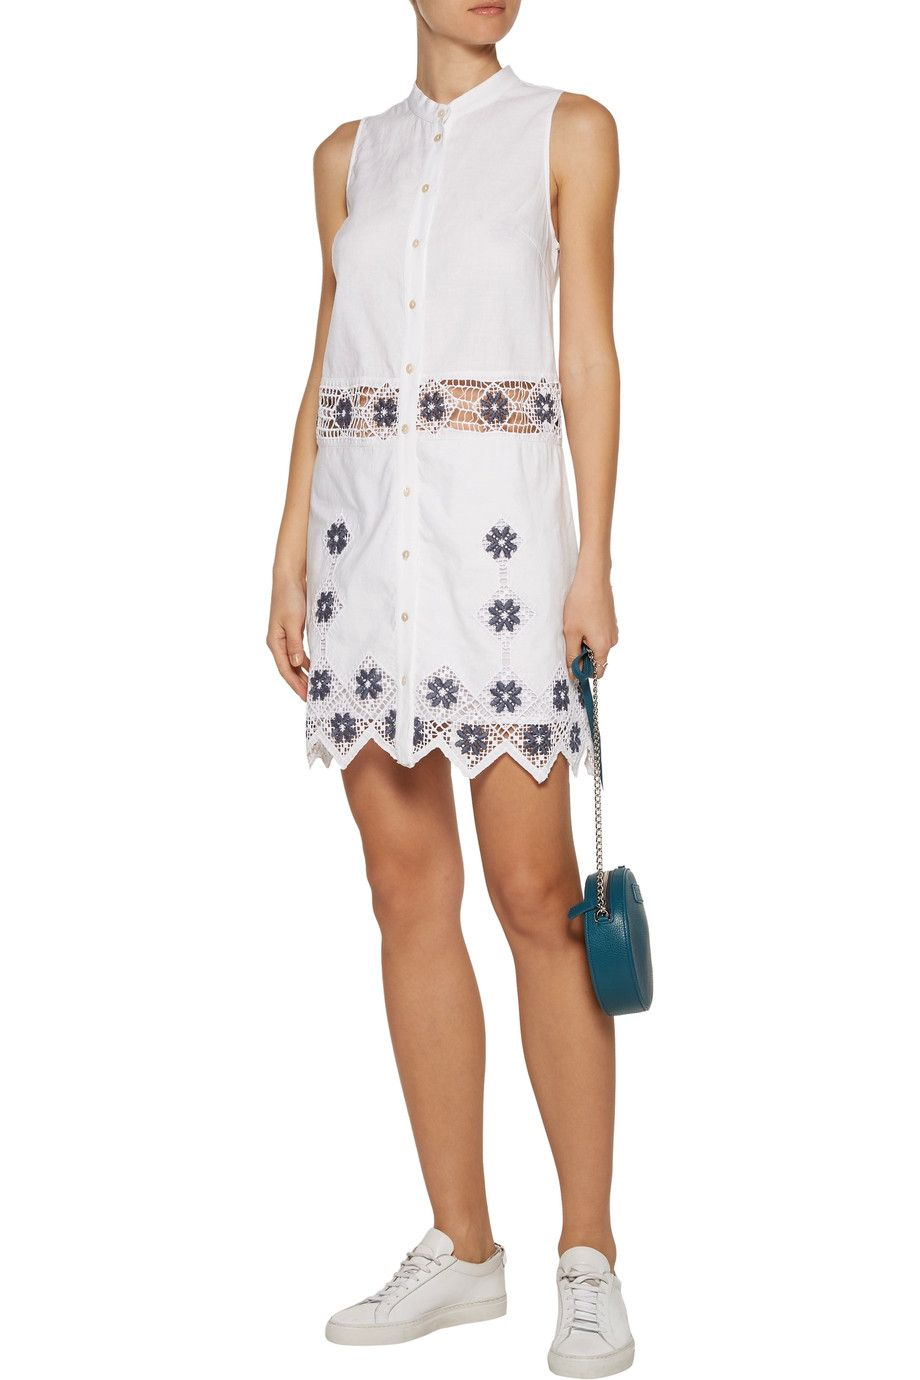 On Suno Embroidered Linen And Cotton Blend Mini Dress Browse Other